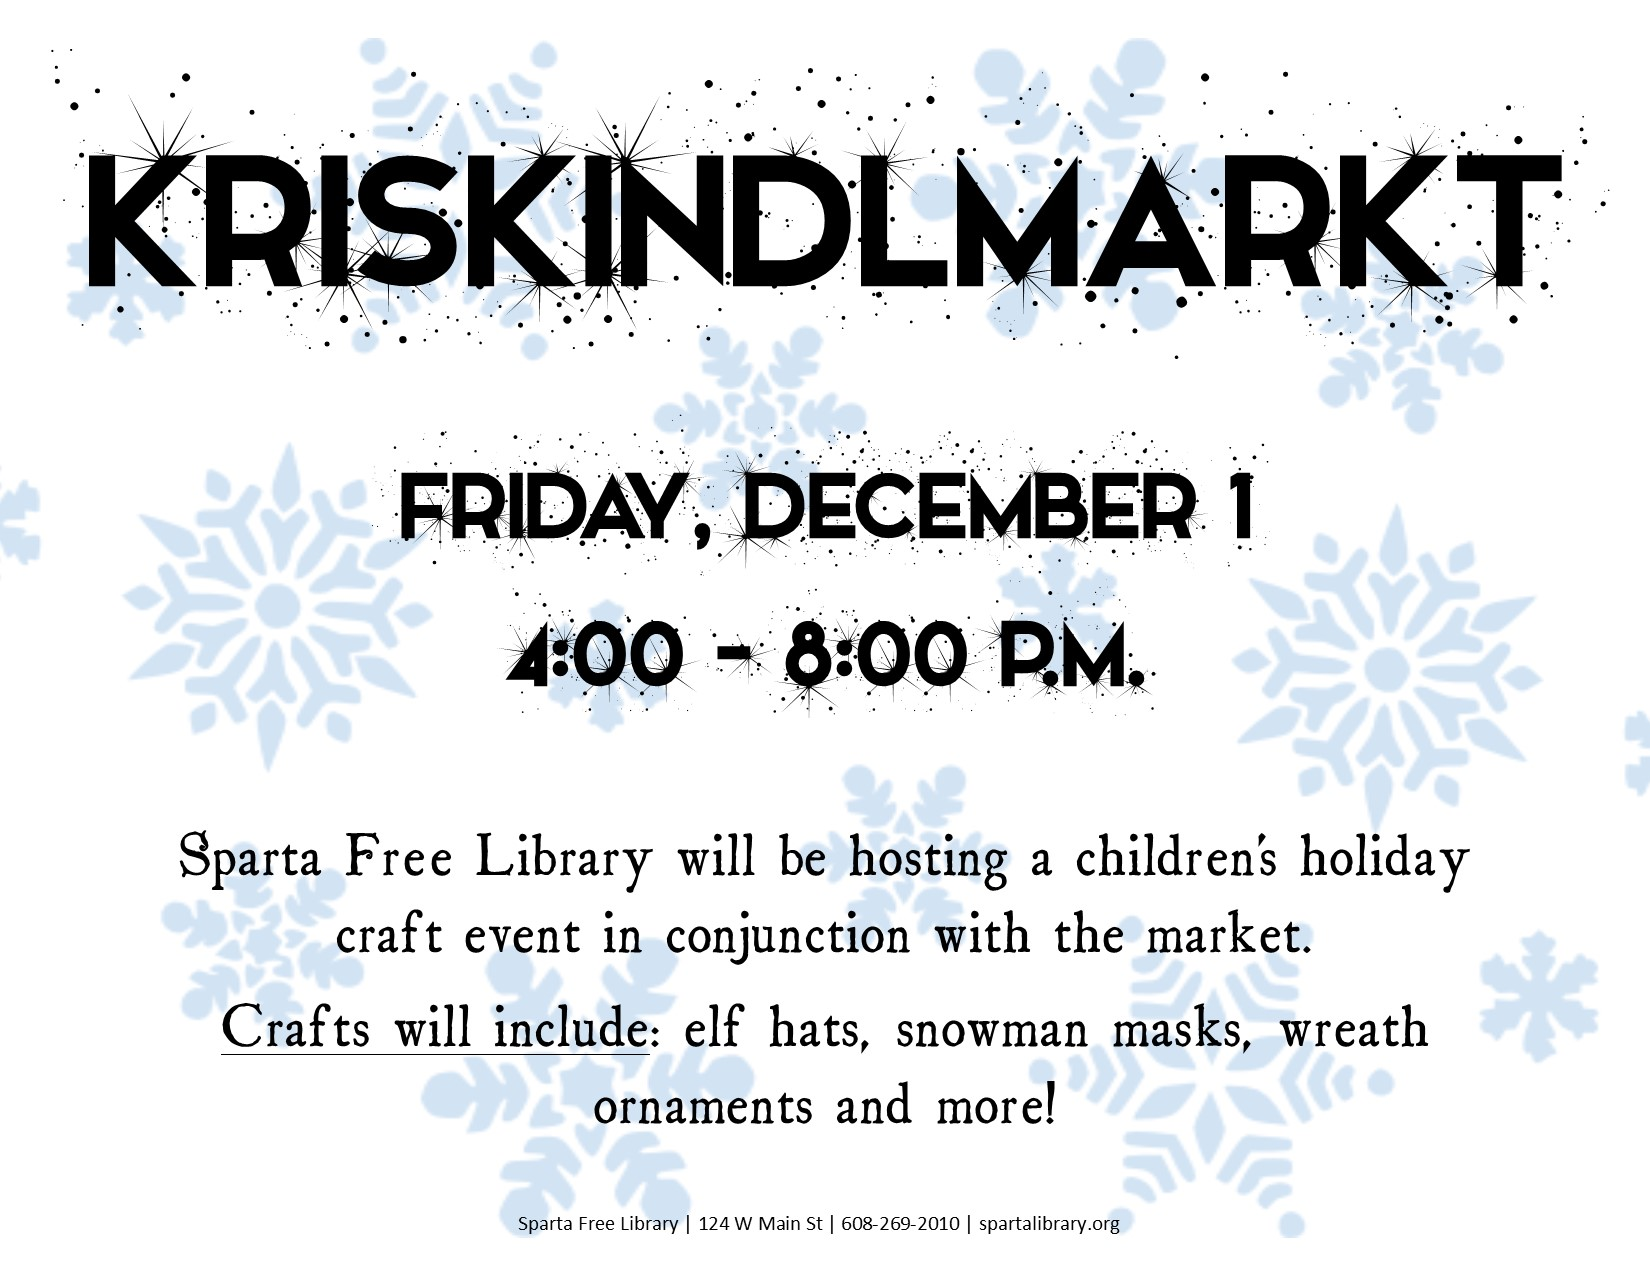 Kriskindlmarkt Craft Day @ Sparta Free Library | Sparta | Wisconsin | United States